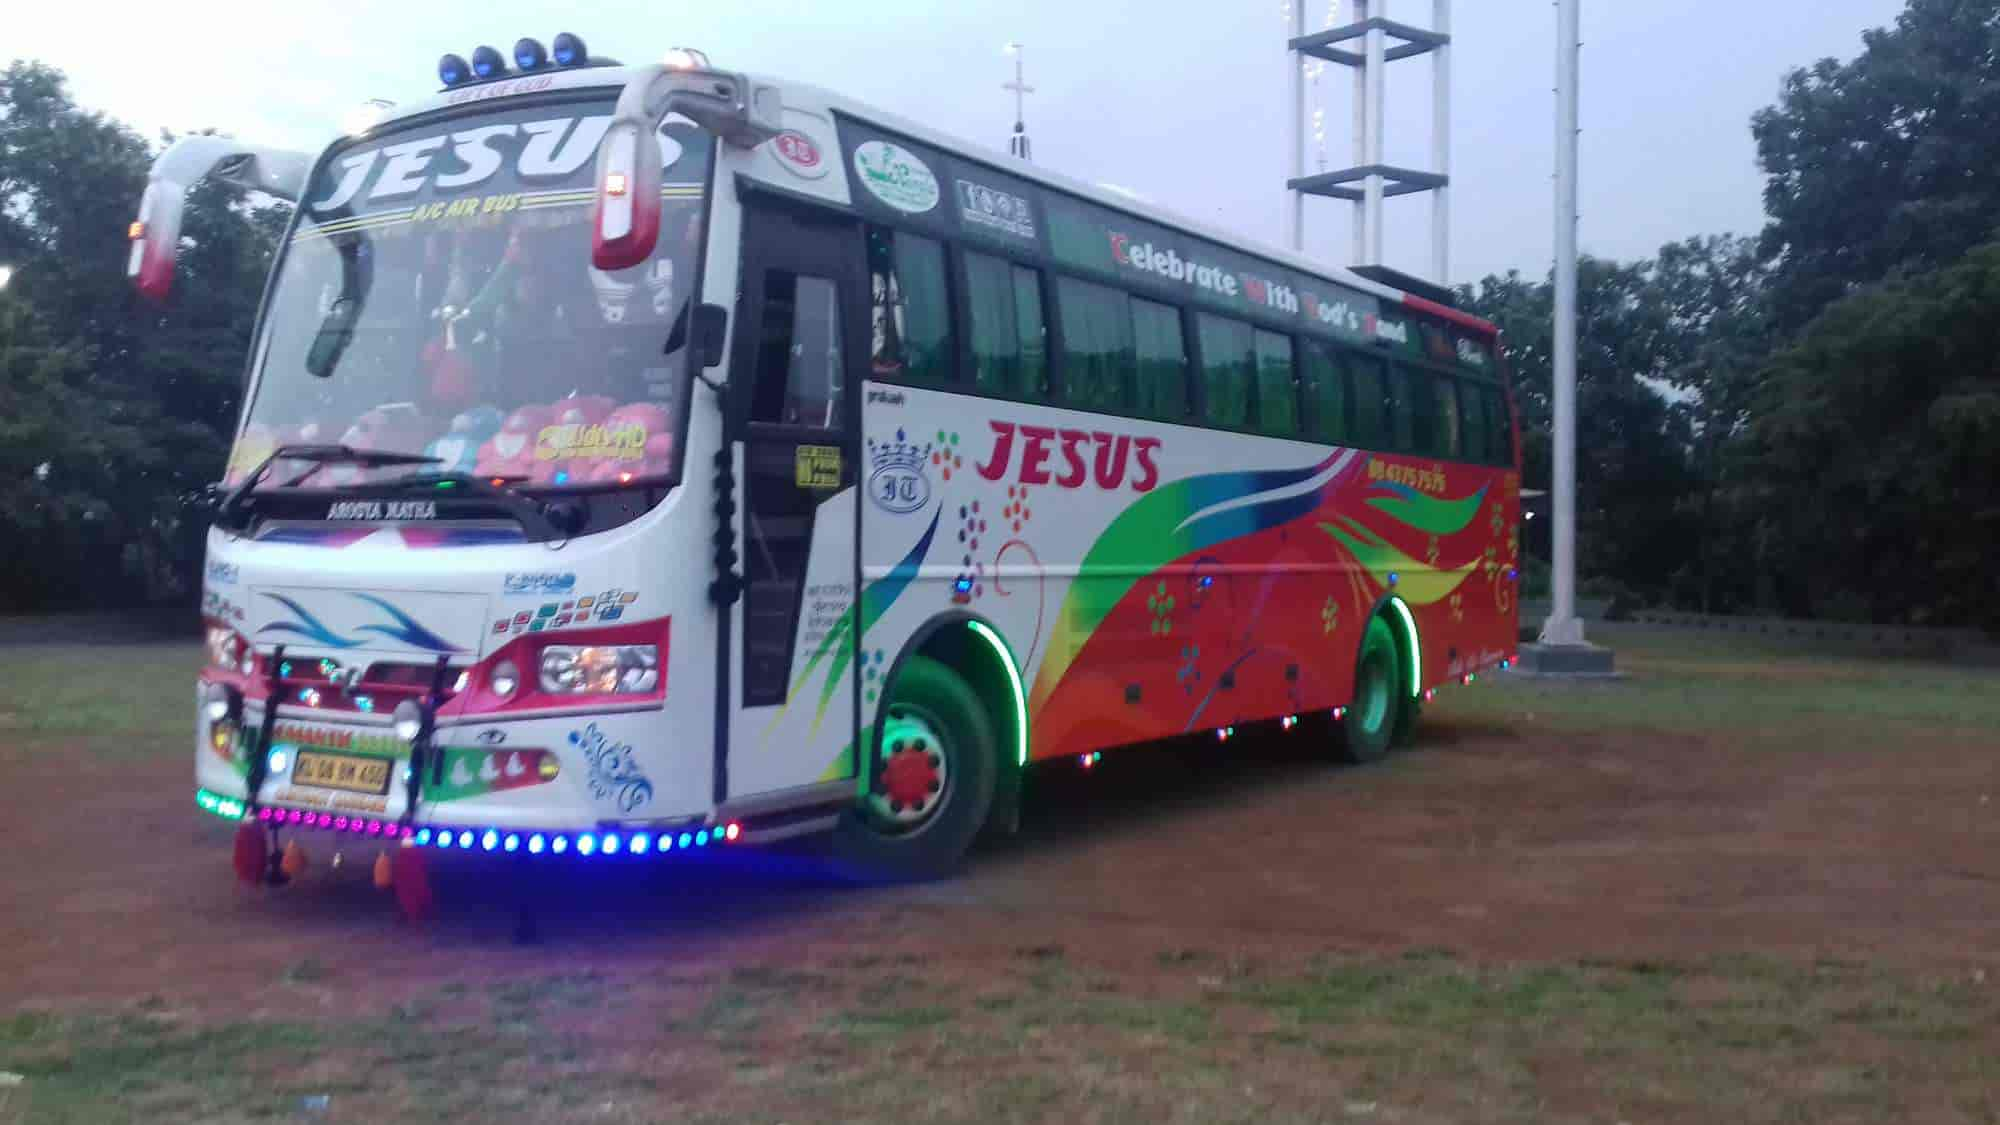 Jesus Travels, West Fort - Car Hire in Thrissur - Justdial